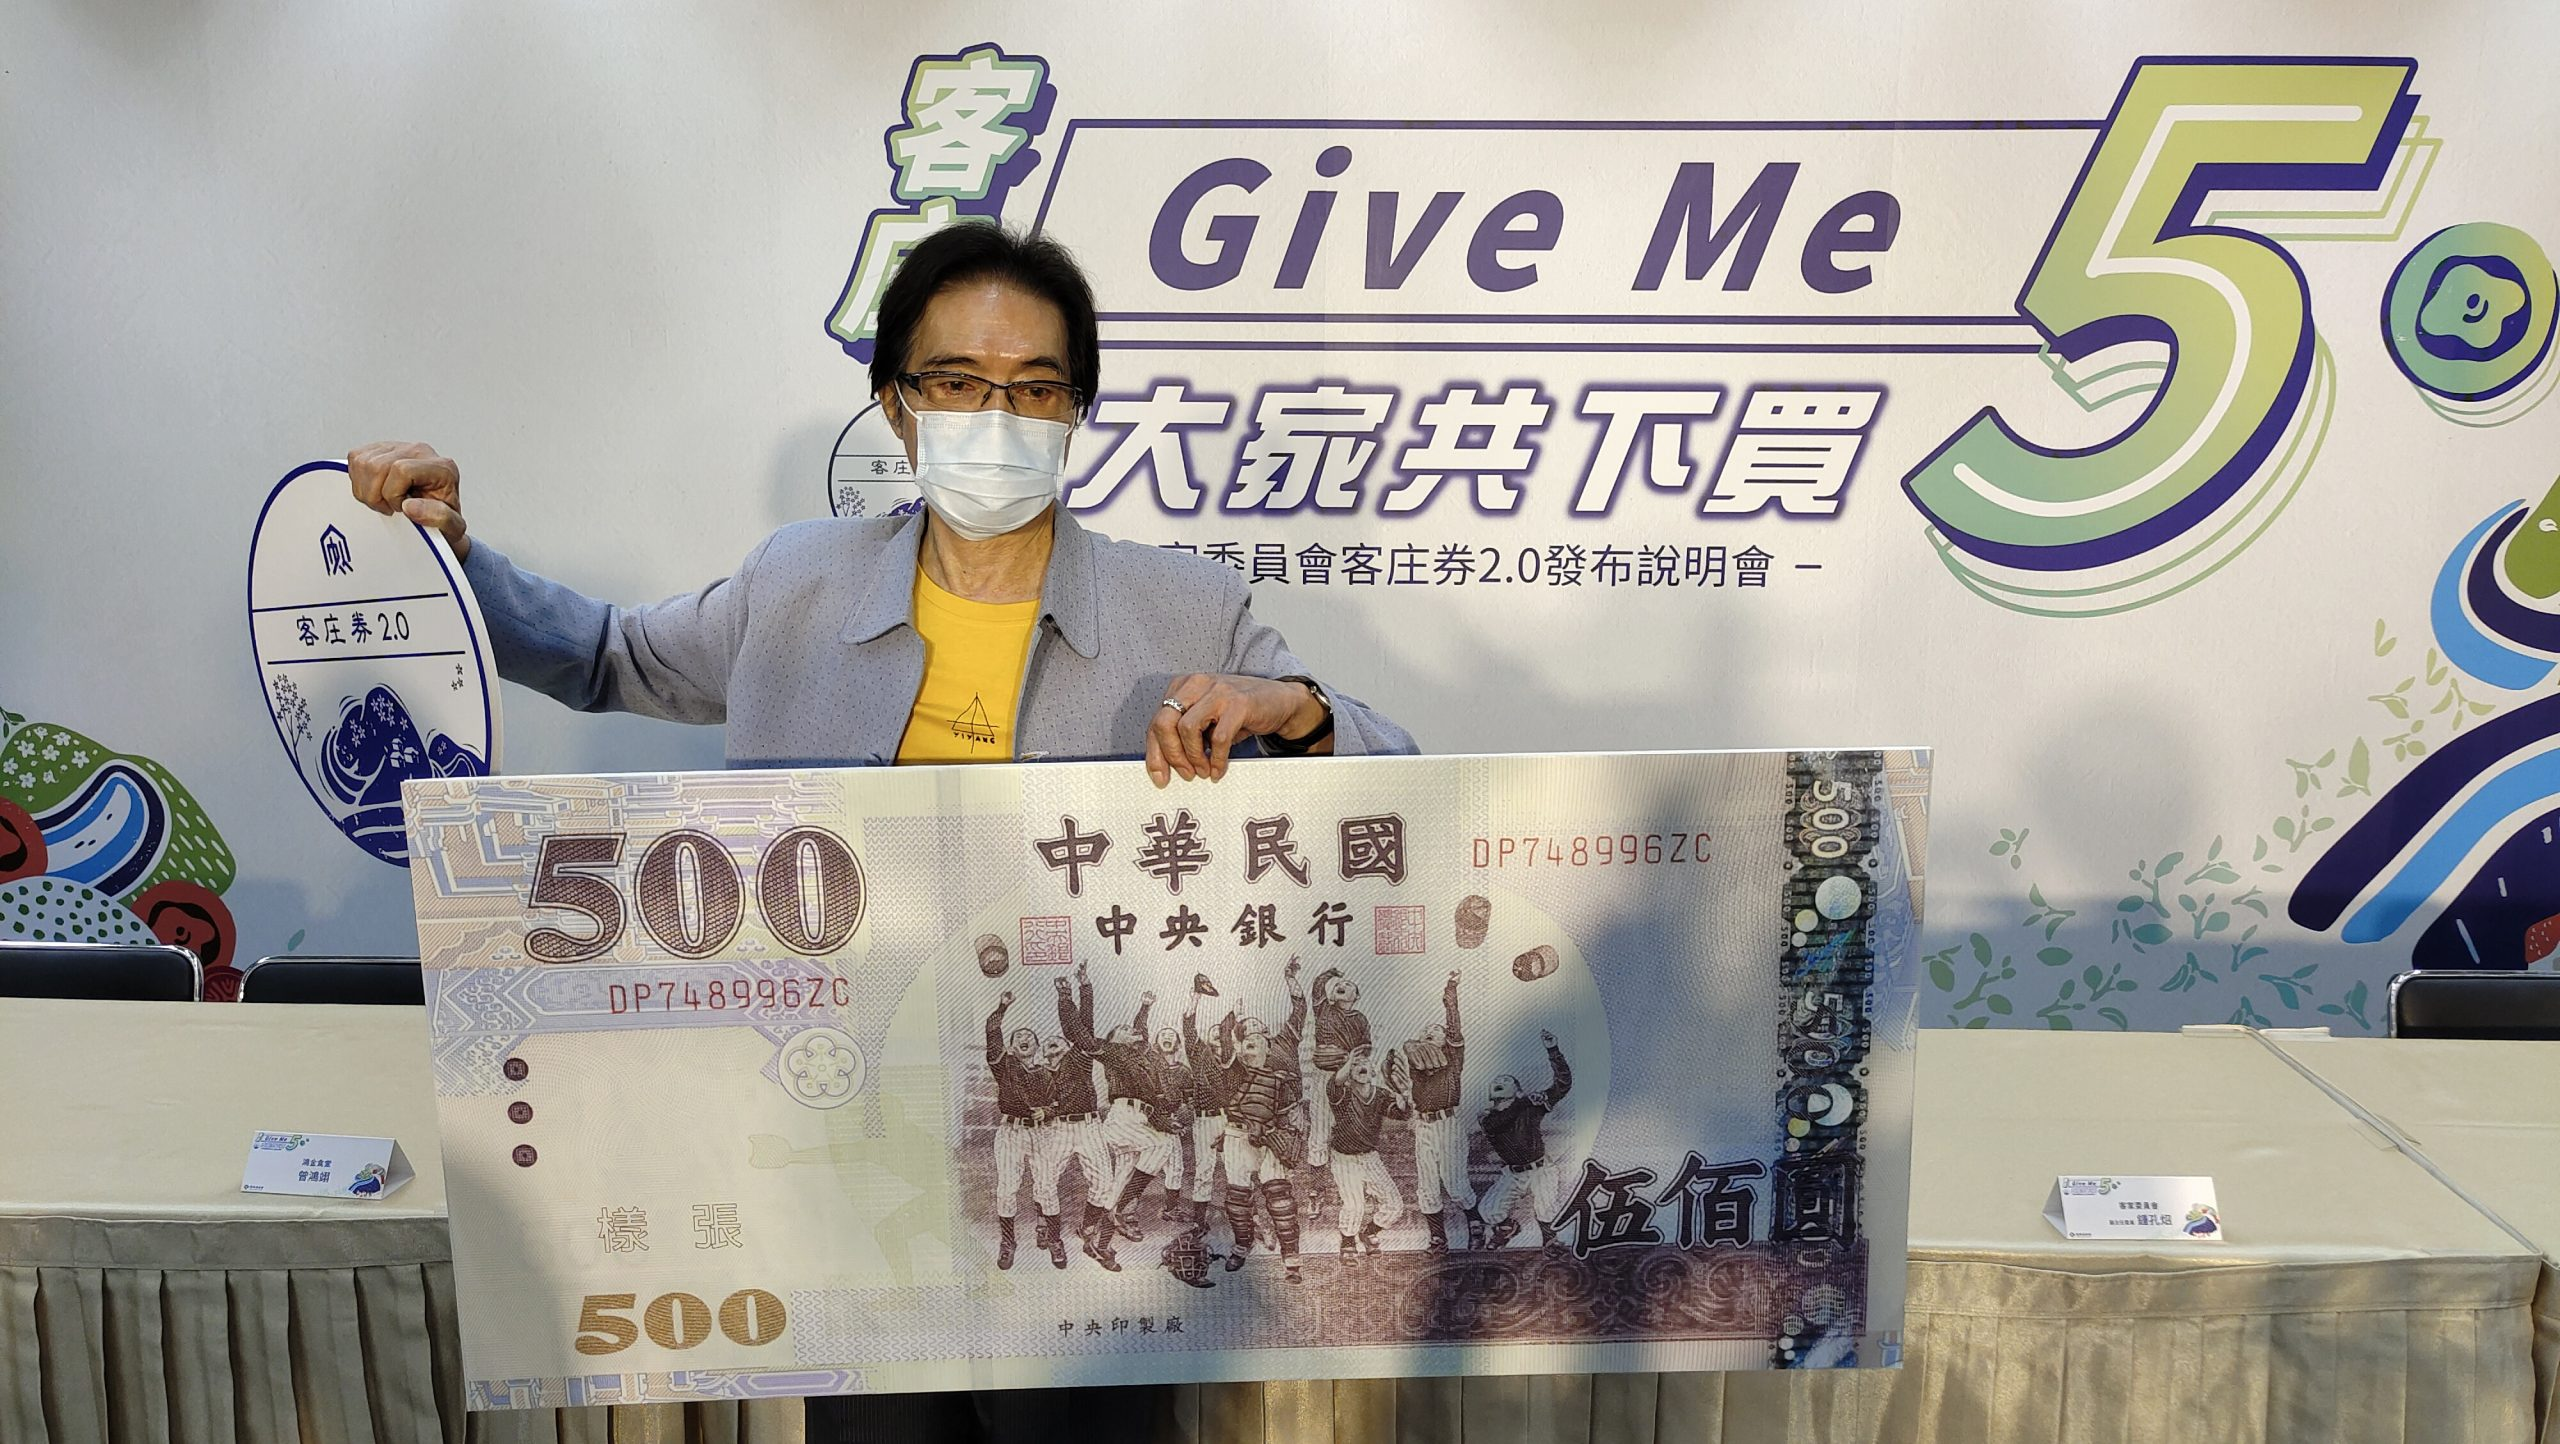 Read more about the article 9/22起40萬份「客庄券2.0」開跑 鍾孔炤期「Give Me 5」來消費